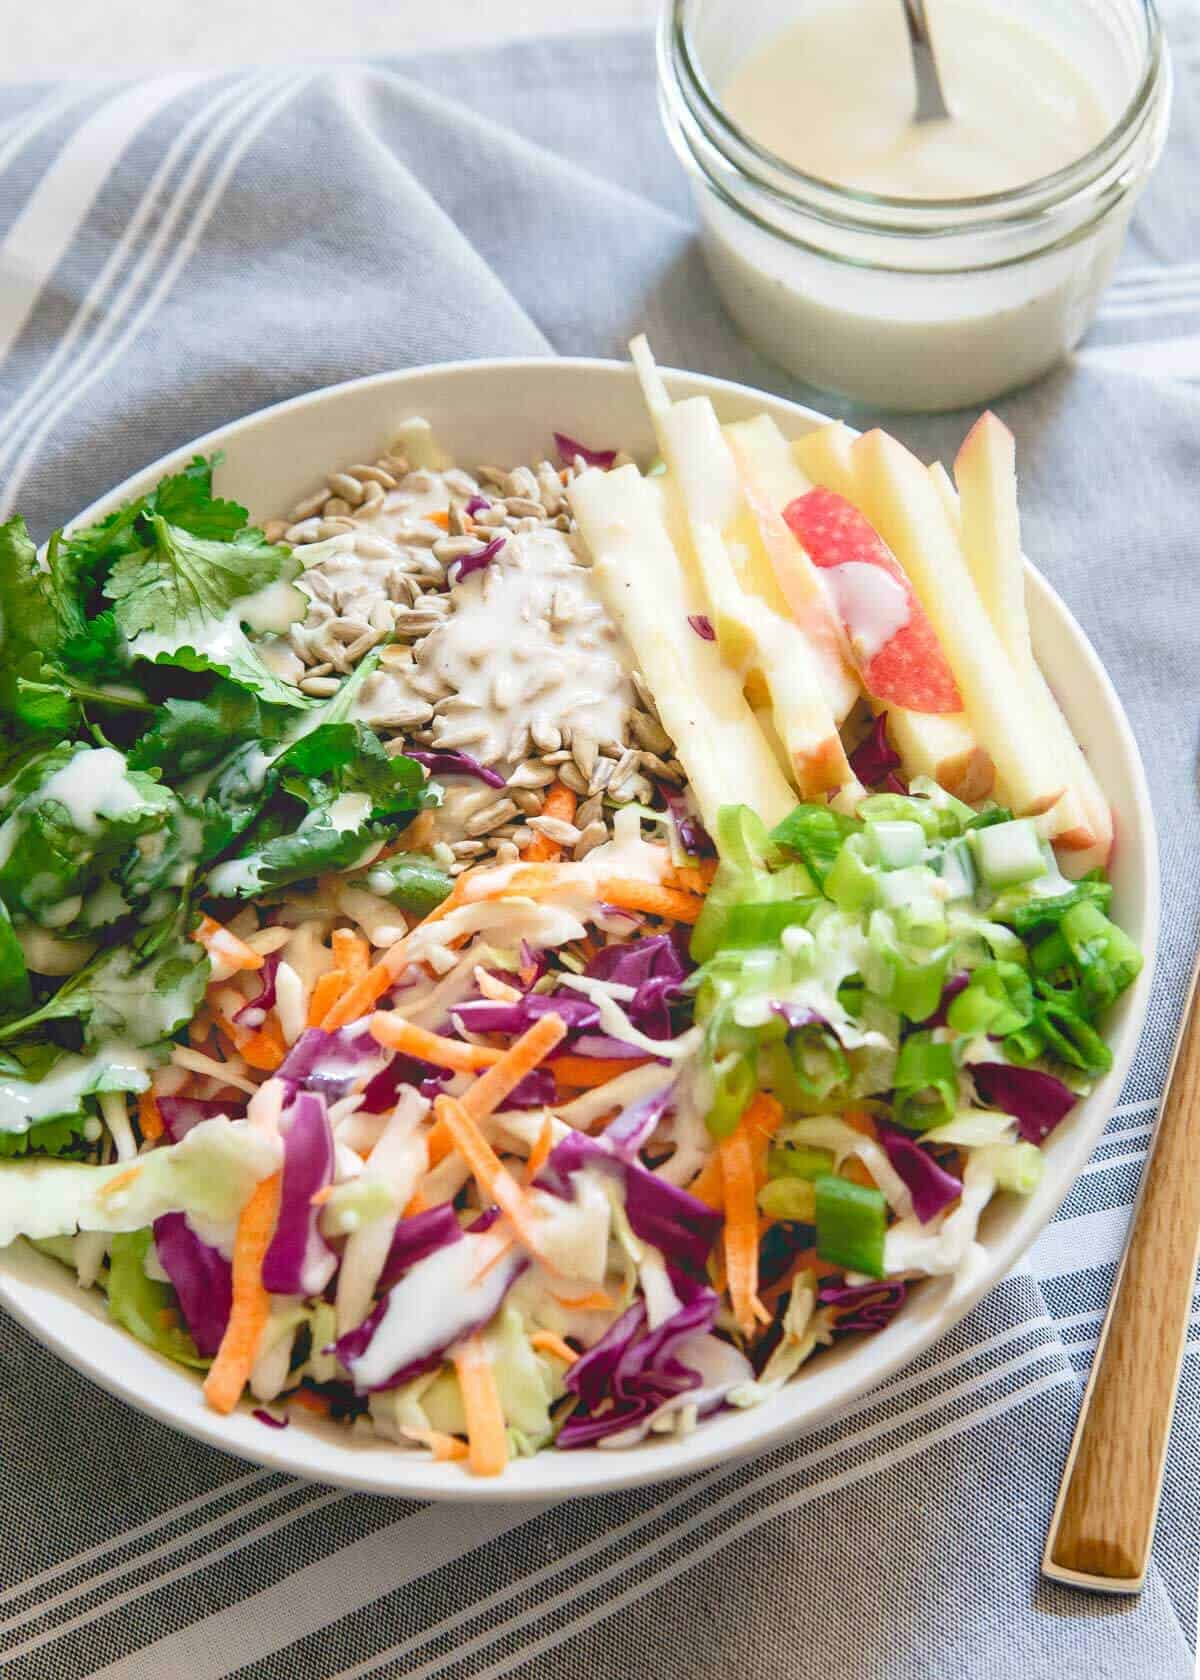 This kefir honey mustard dressing is creamy, tangy and boosted with both naturally occurring probiotics and a probiotic powder supplement to up your healthy salad game!